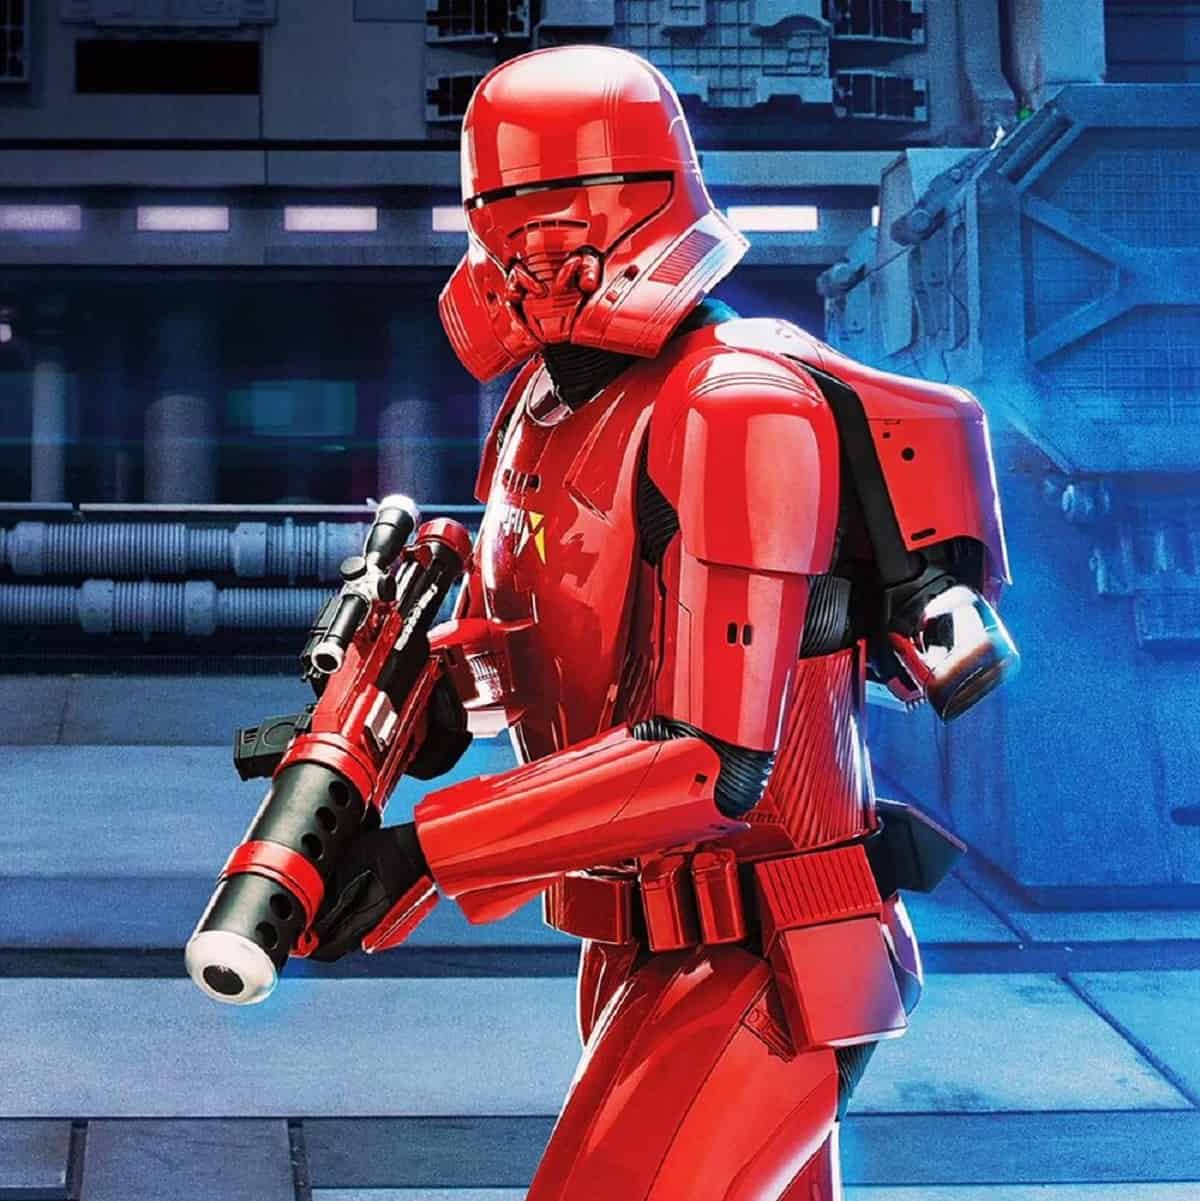 Sith Jet Trooper from the Topps trading cards